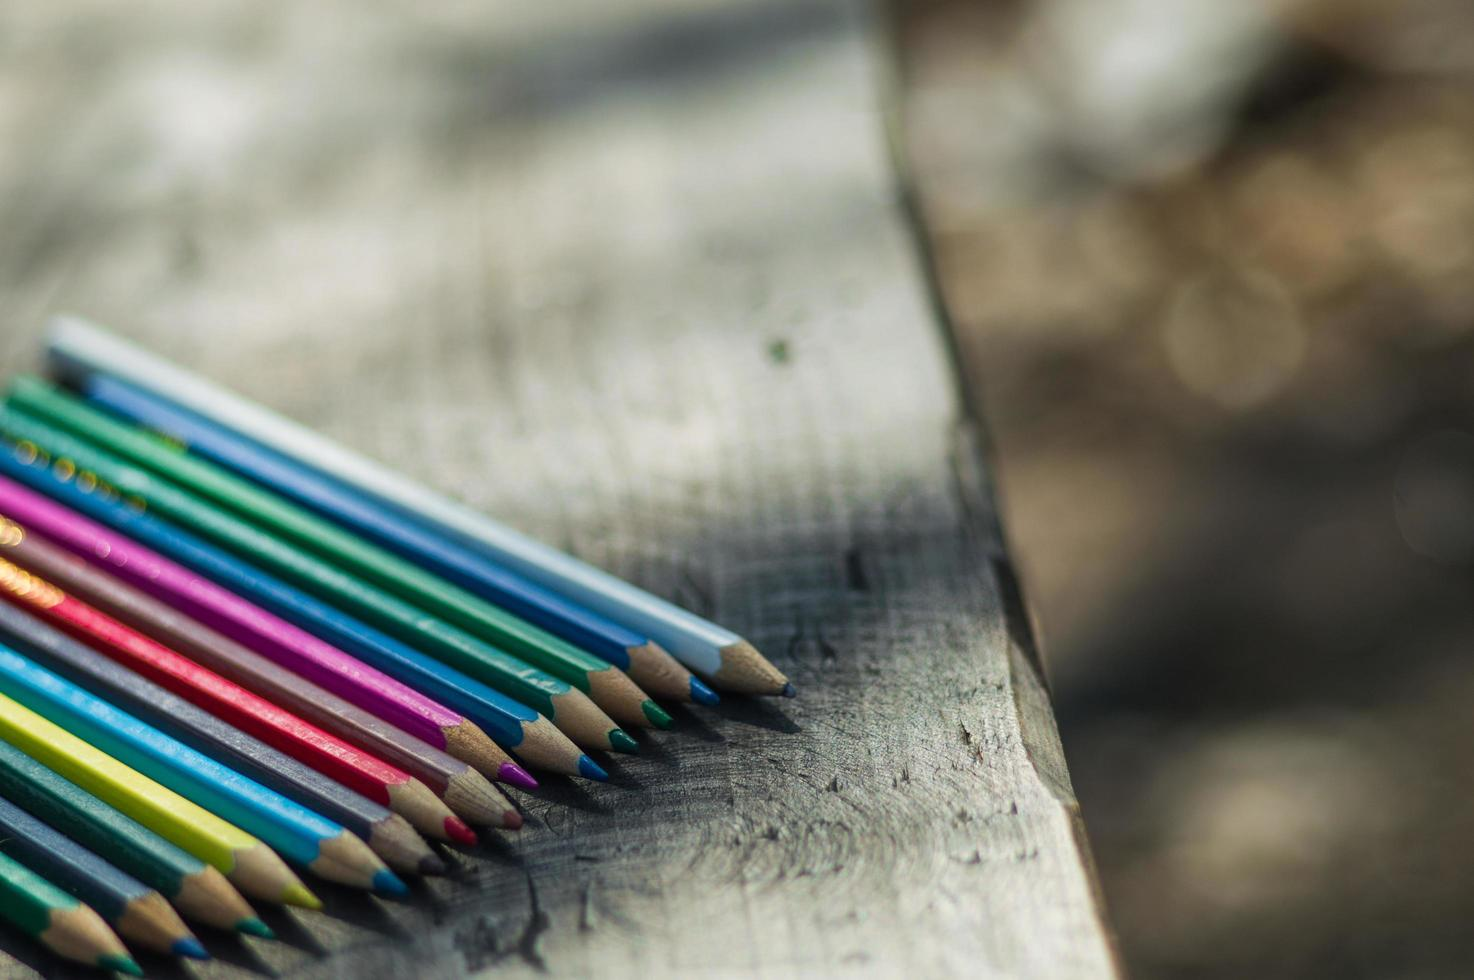 Pencils of different colors on a the bench photo